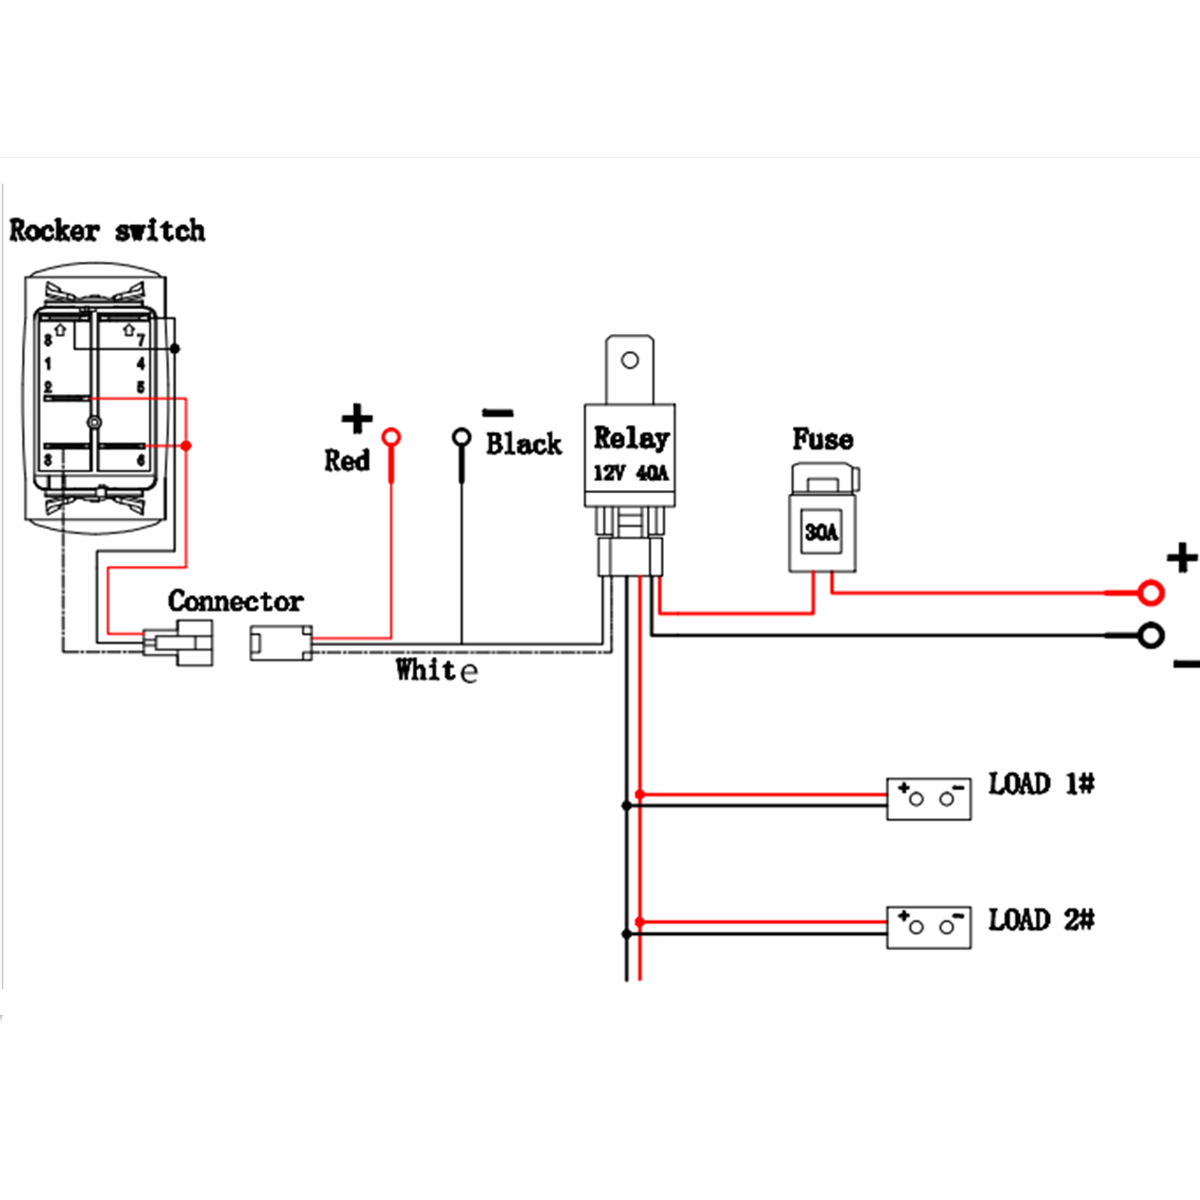 12v Lighted Switch Wiring - wiring diagram on the net on